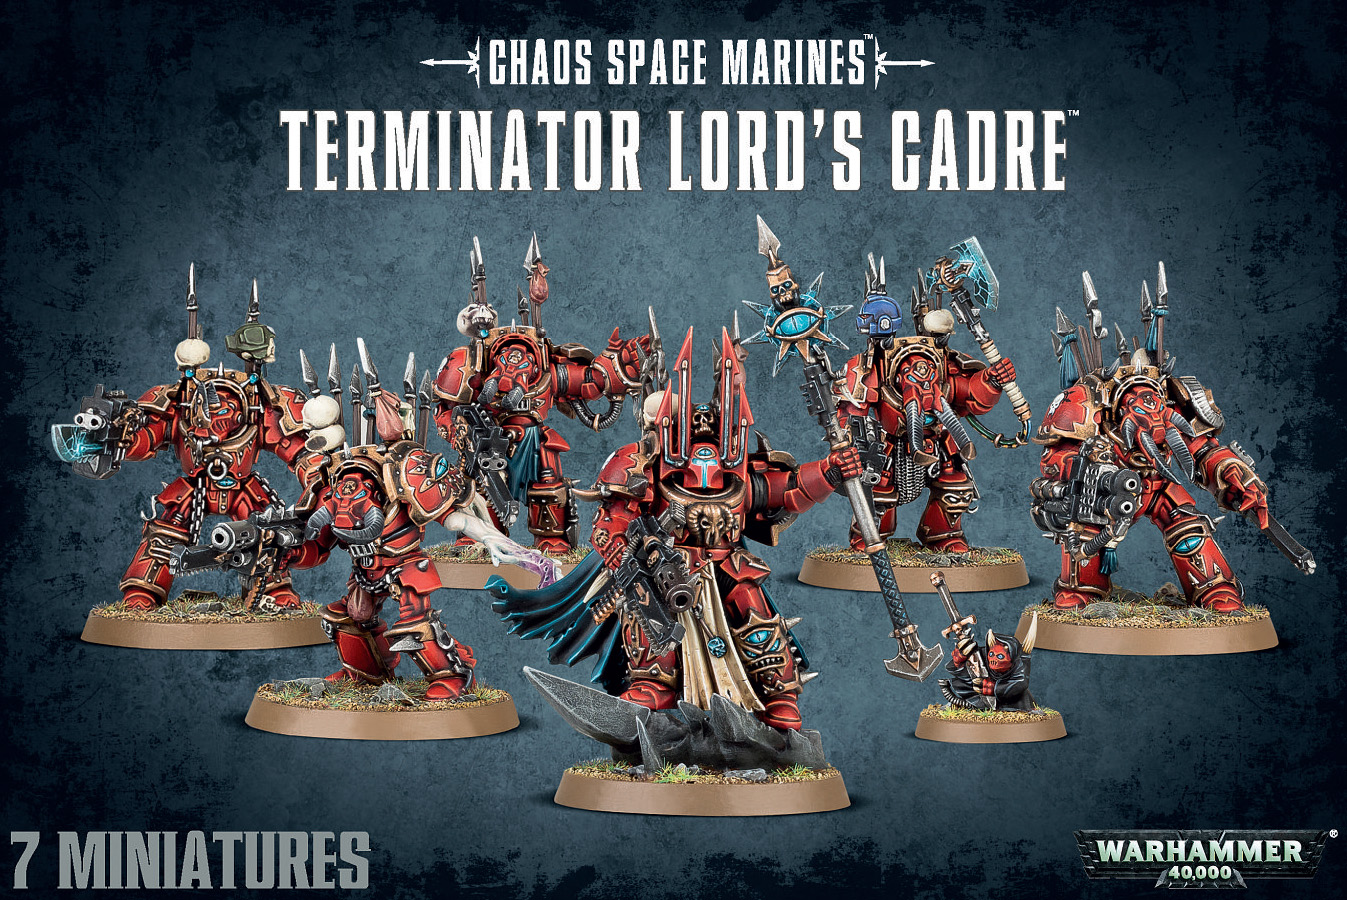 Warhammer 40,000: Chaos Space Marines: Chaos Space Marines Terminator Lords Cadre